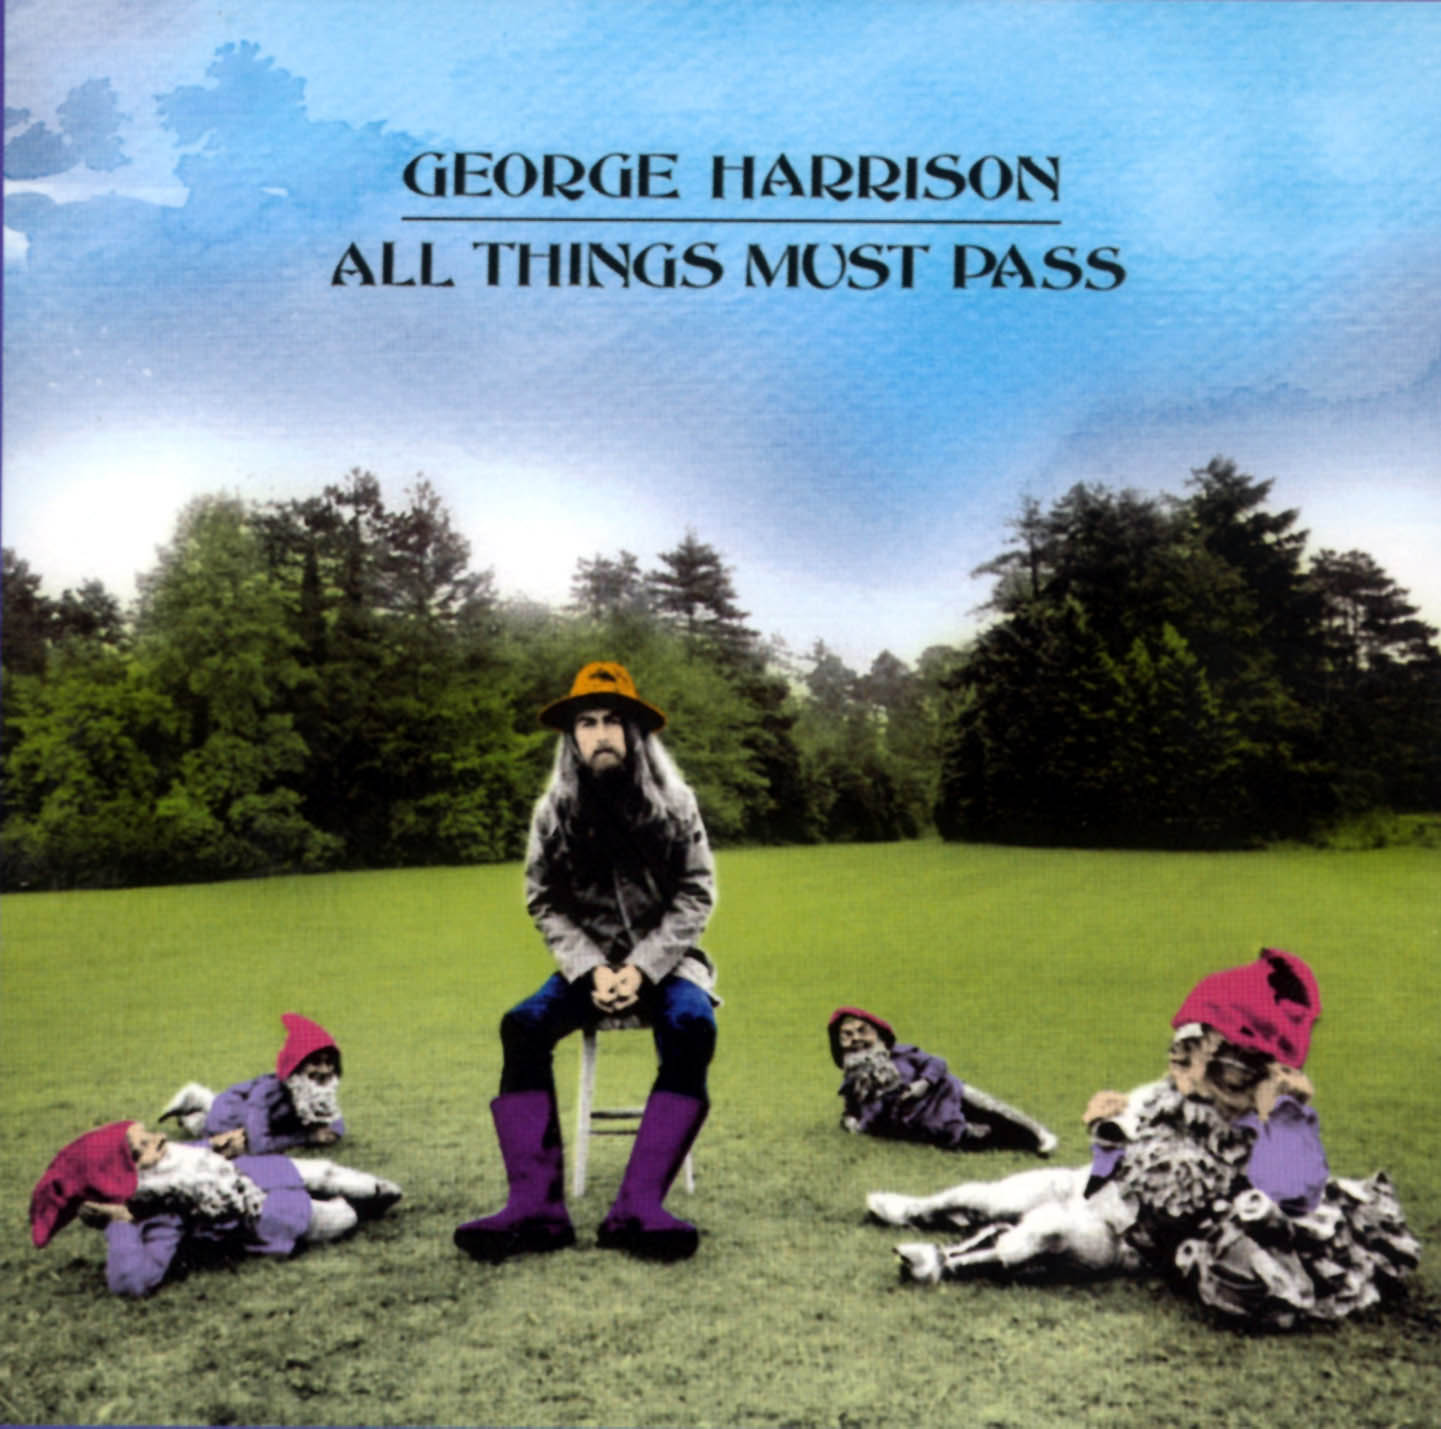 http://4.bp.blogspot.com/_XkG_VYFdA-E/TTBJFN0qDtI/AAAAAAAAABY/wu9RYZfmSxU/s1600/George_Harrison-All_Things_Must_Pass-Frontal.jpg